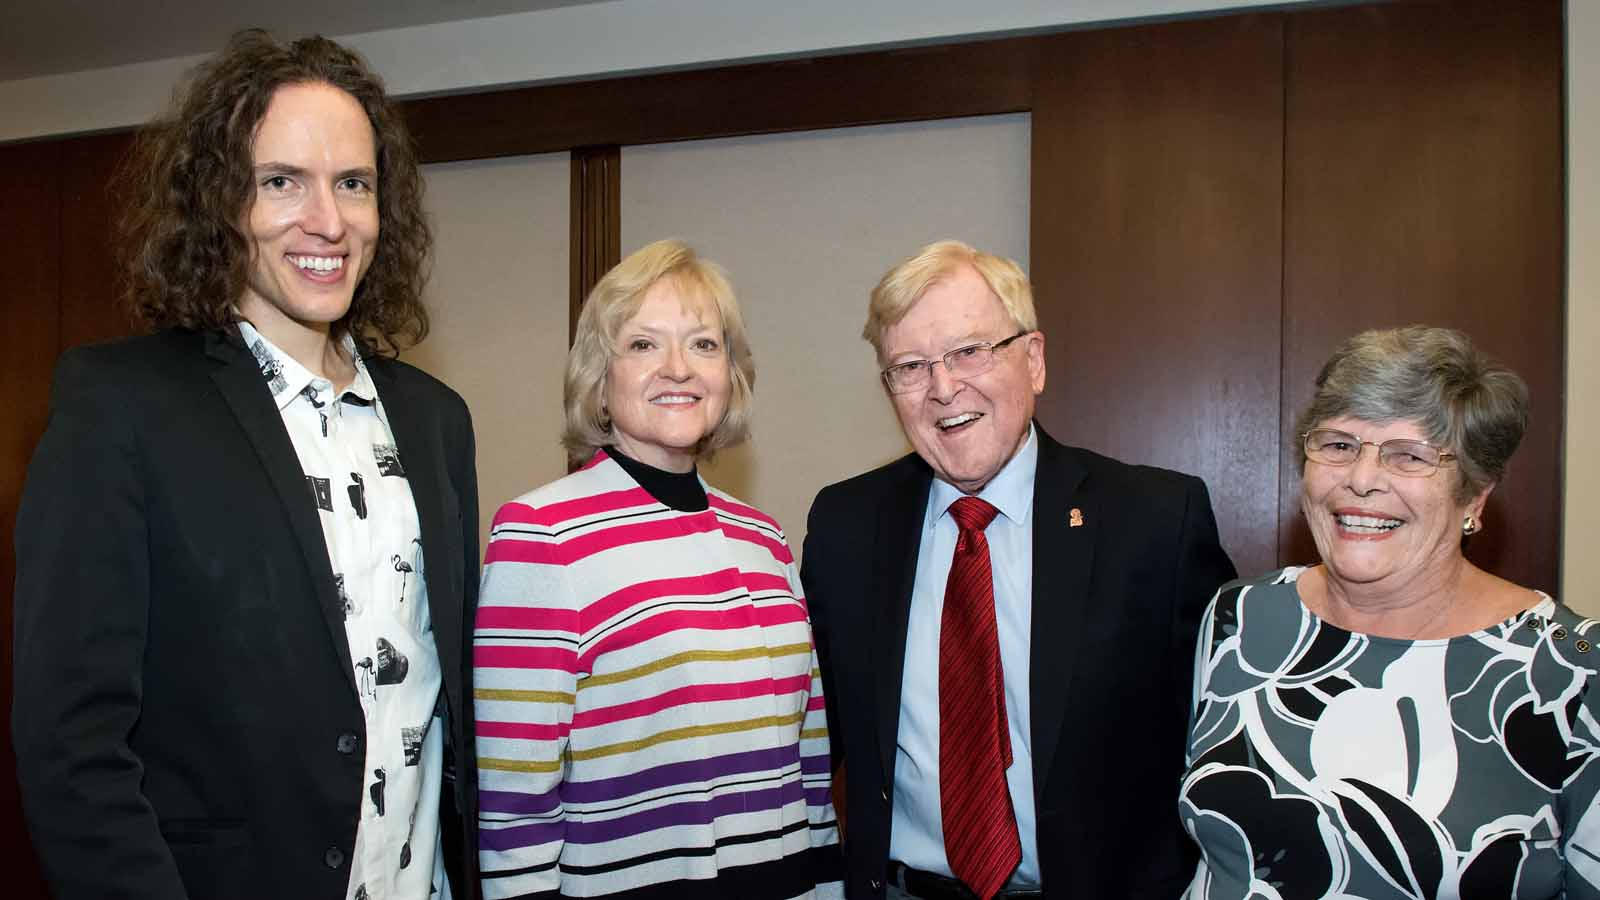 Tim Fain and Karen Arrison with Mike and Marilyn Collins